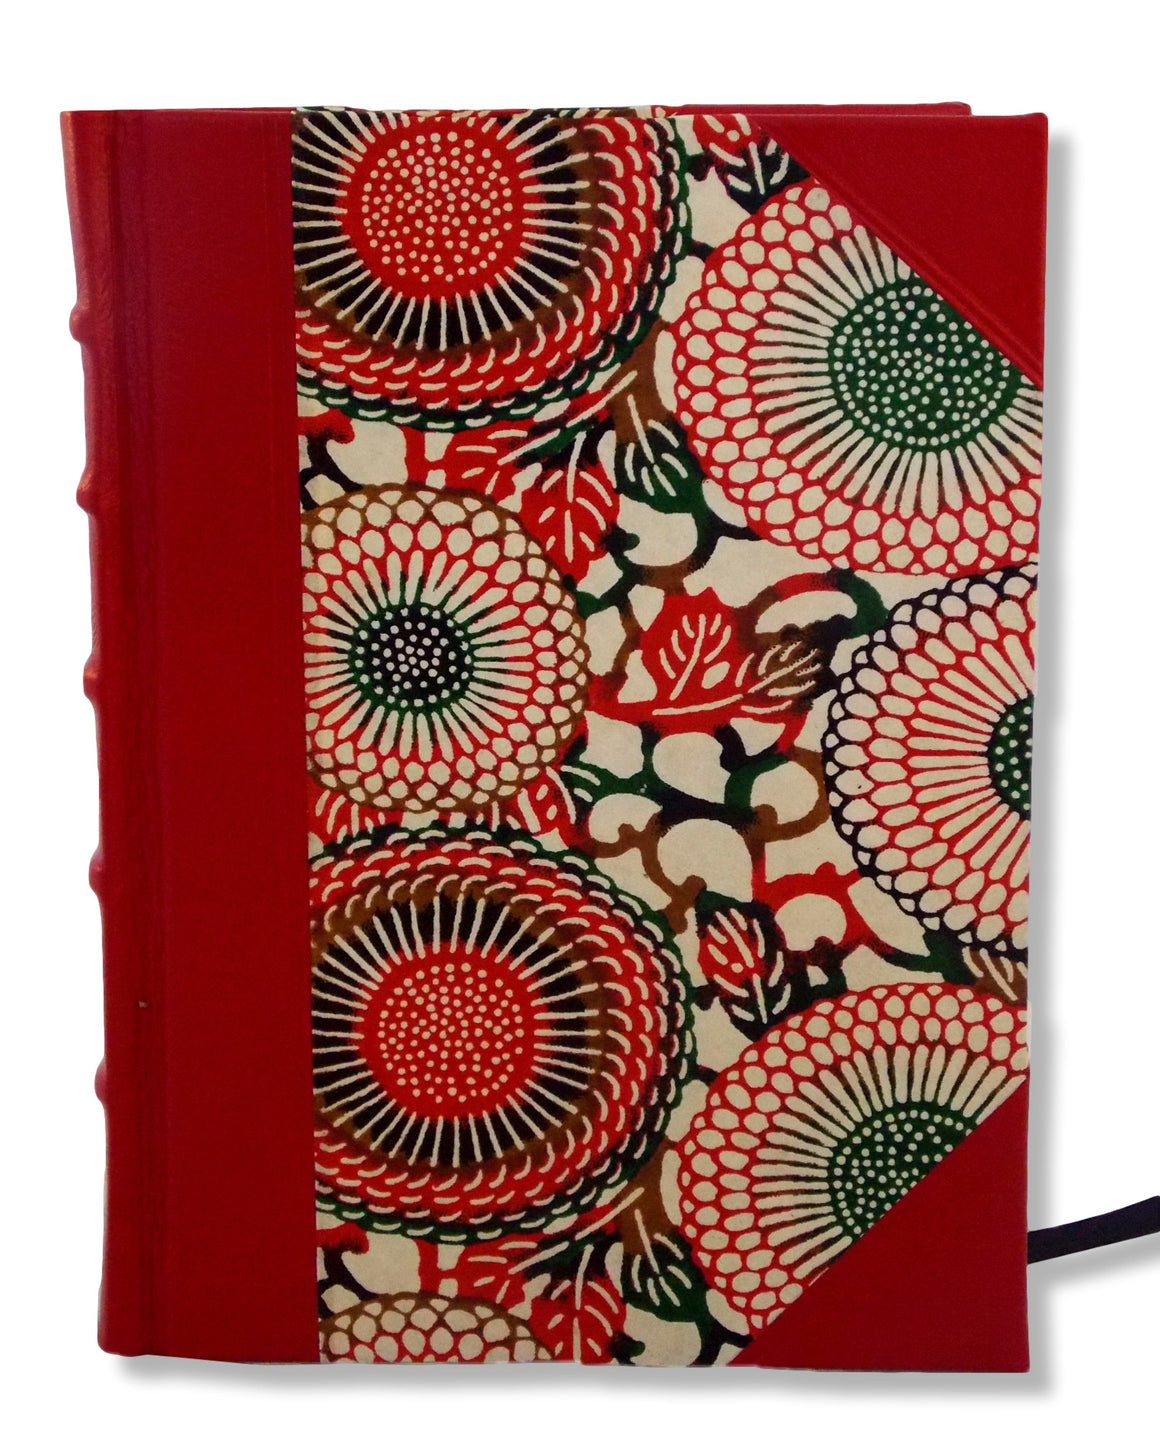 Red half leather blank journal featuring distinctive Japanese washi paper sides